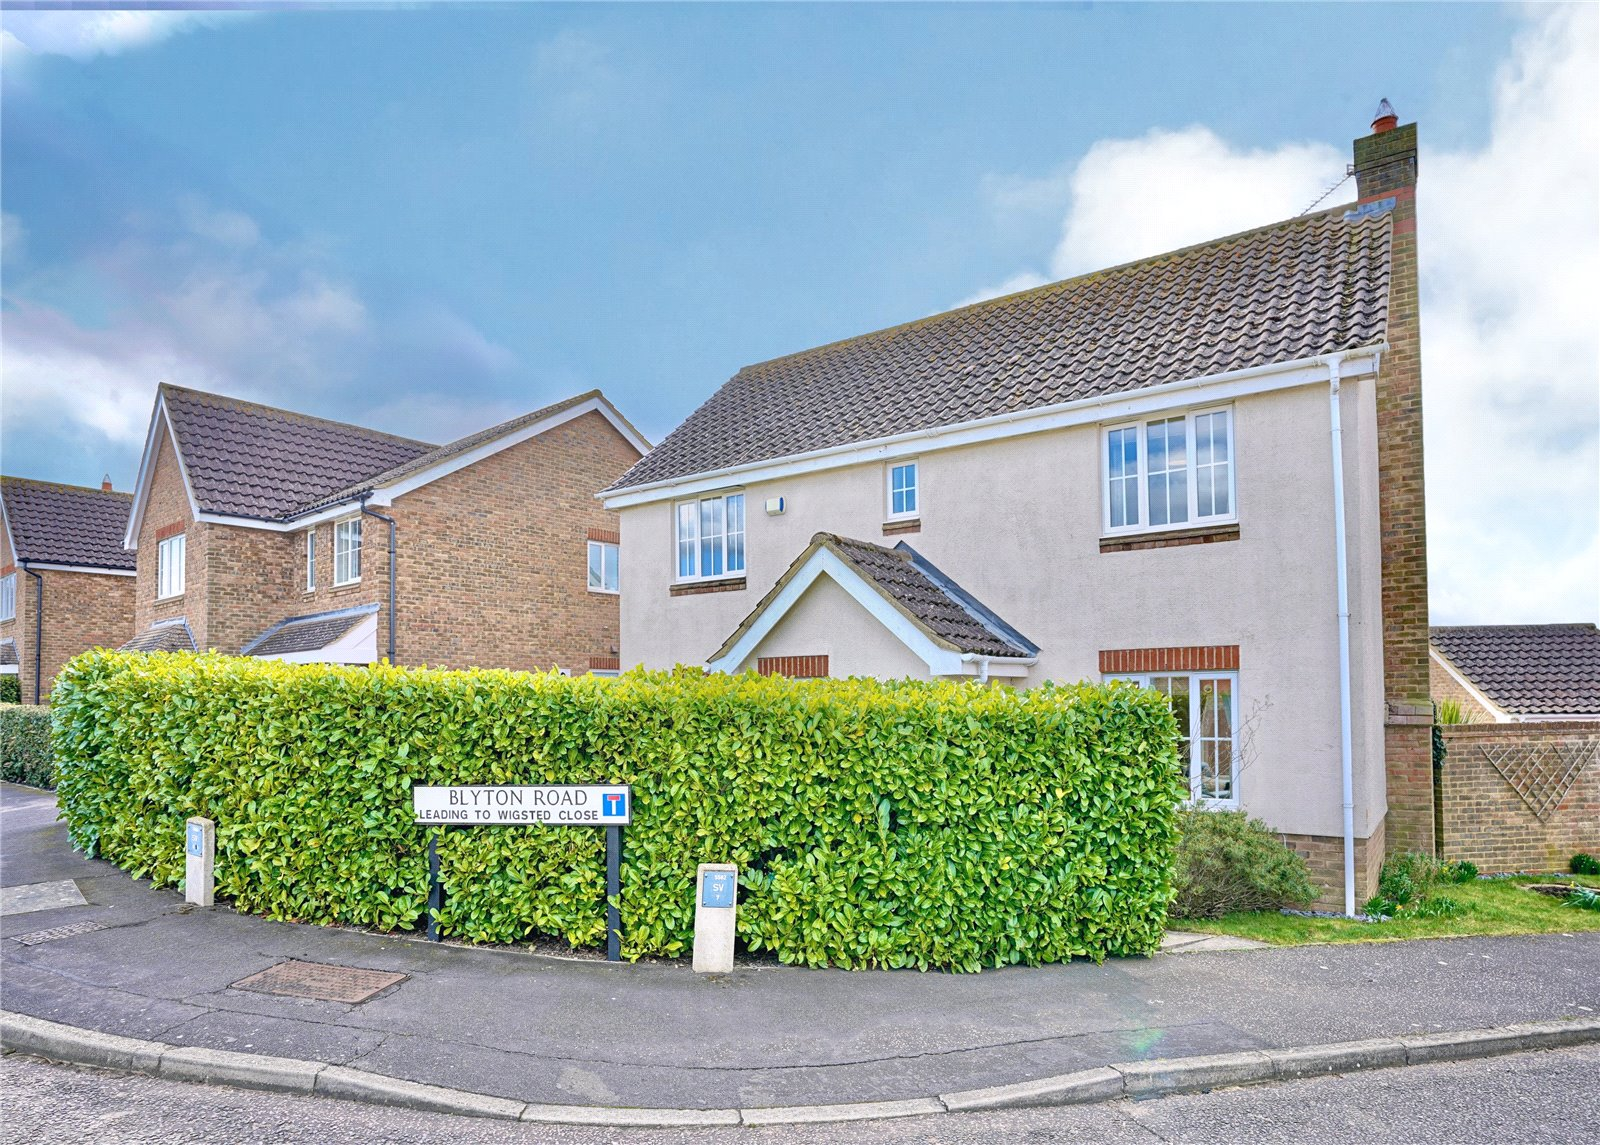 4 bed house for sale in Papworth Everard, CB23 3XY  - Property Image 1